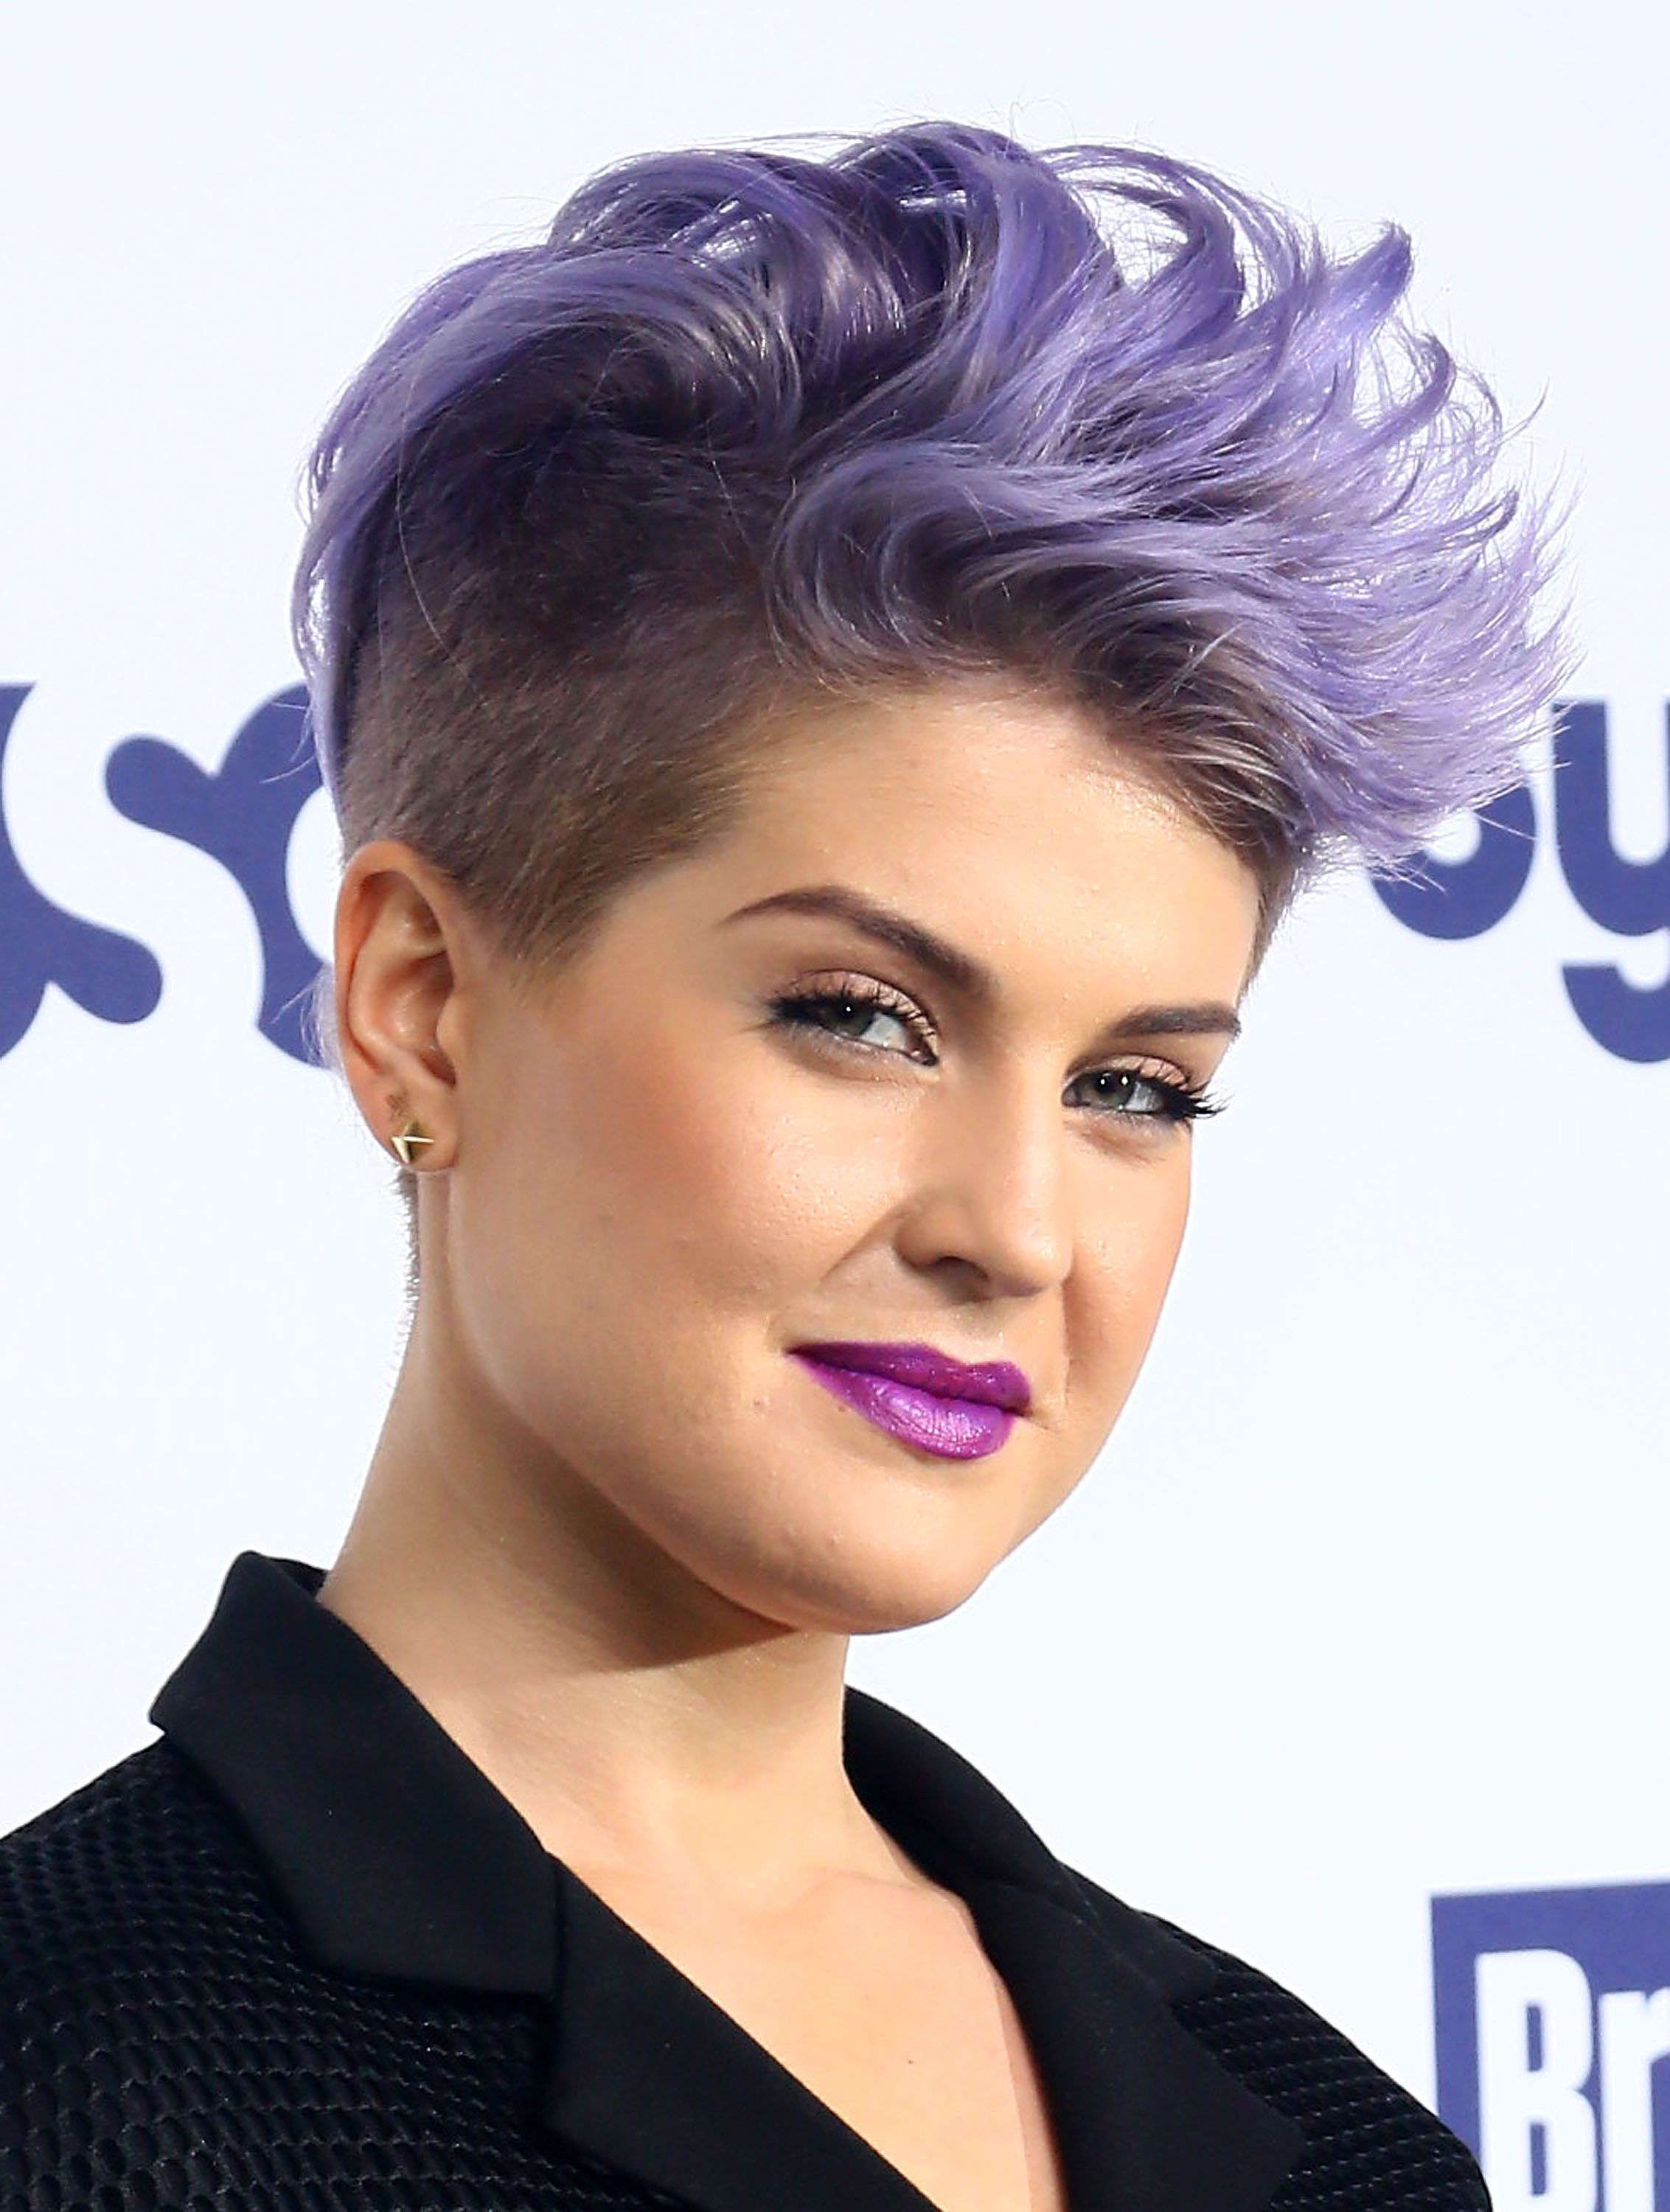 Kelly Osbourne speaks out about 'cancel culture'